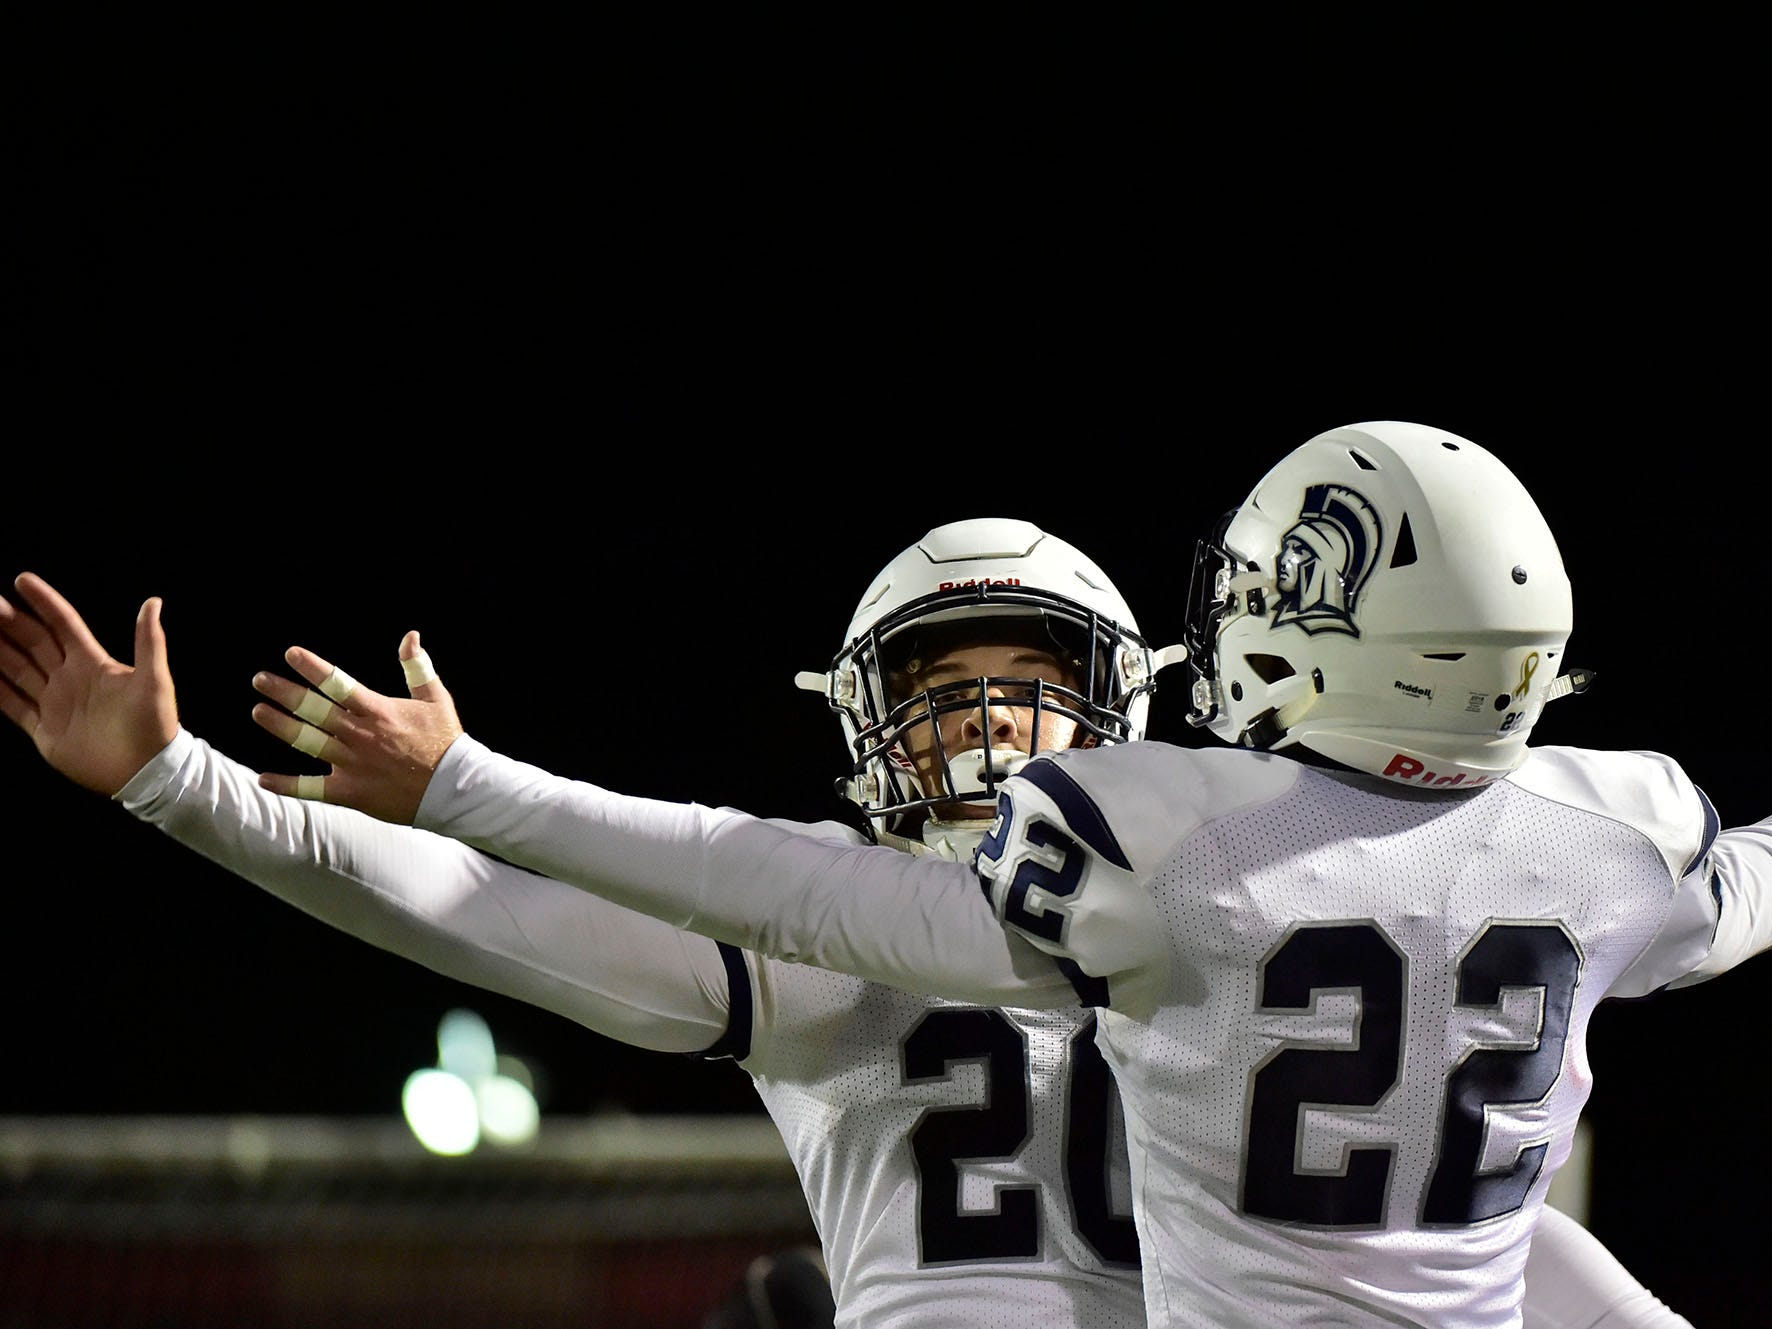 Kyere Morton (2) of Chambersburg celebrates a touchdown with teammate Tucker Perry (22). Chambersburg Trojans jumped ahead of Central Dauphin East to win 26-20 in PIAA football on Friday, October 5, 2018.